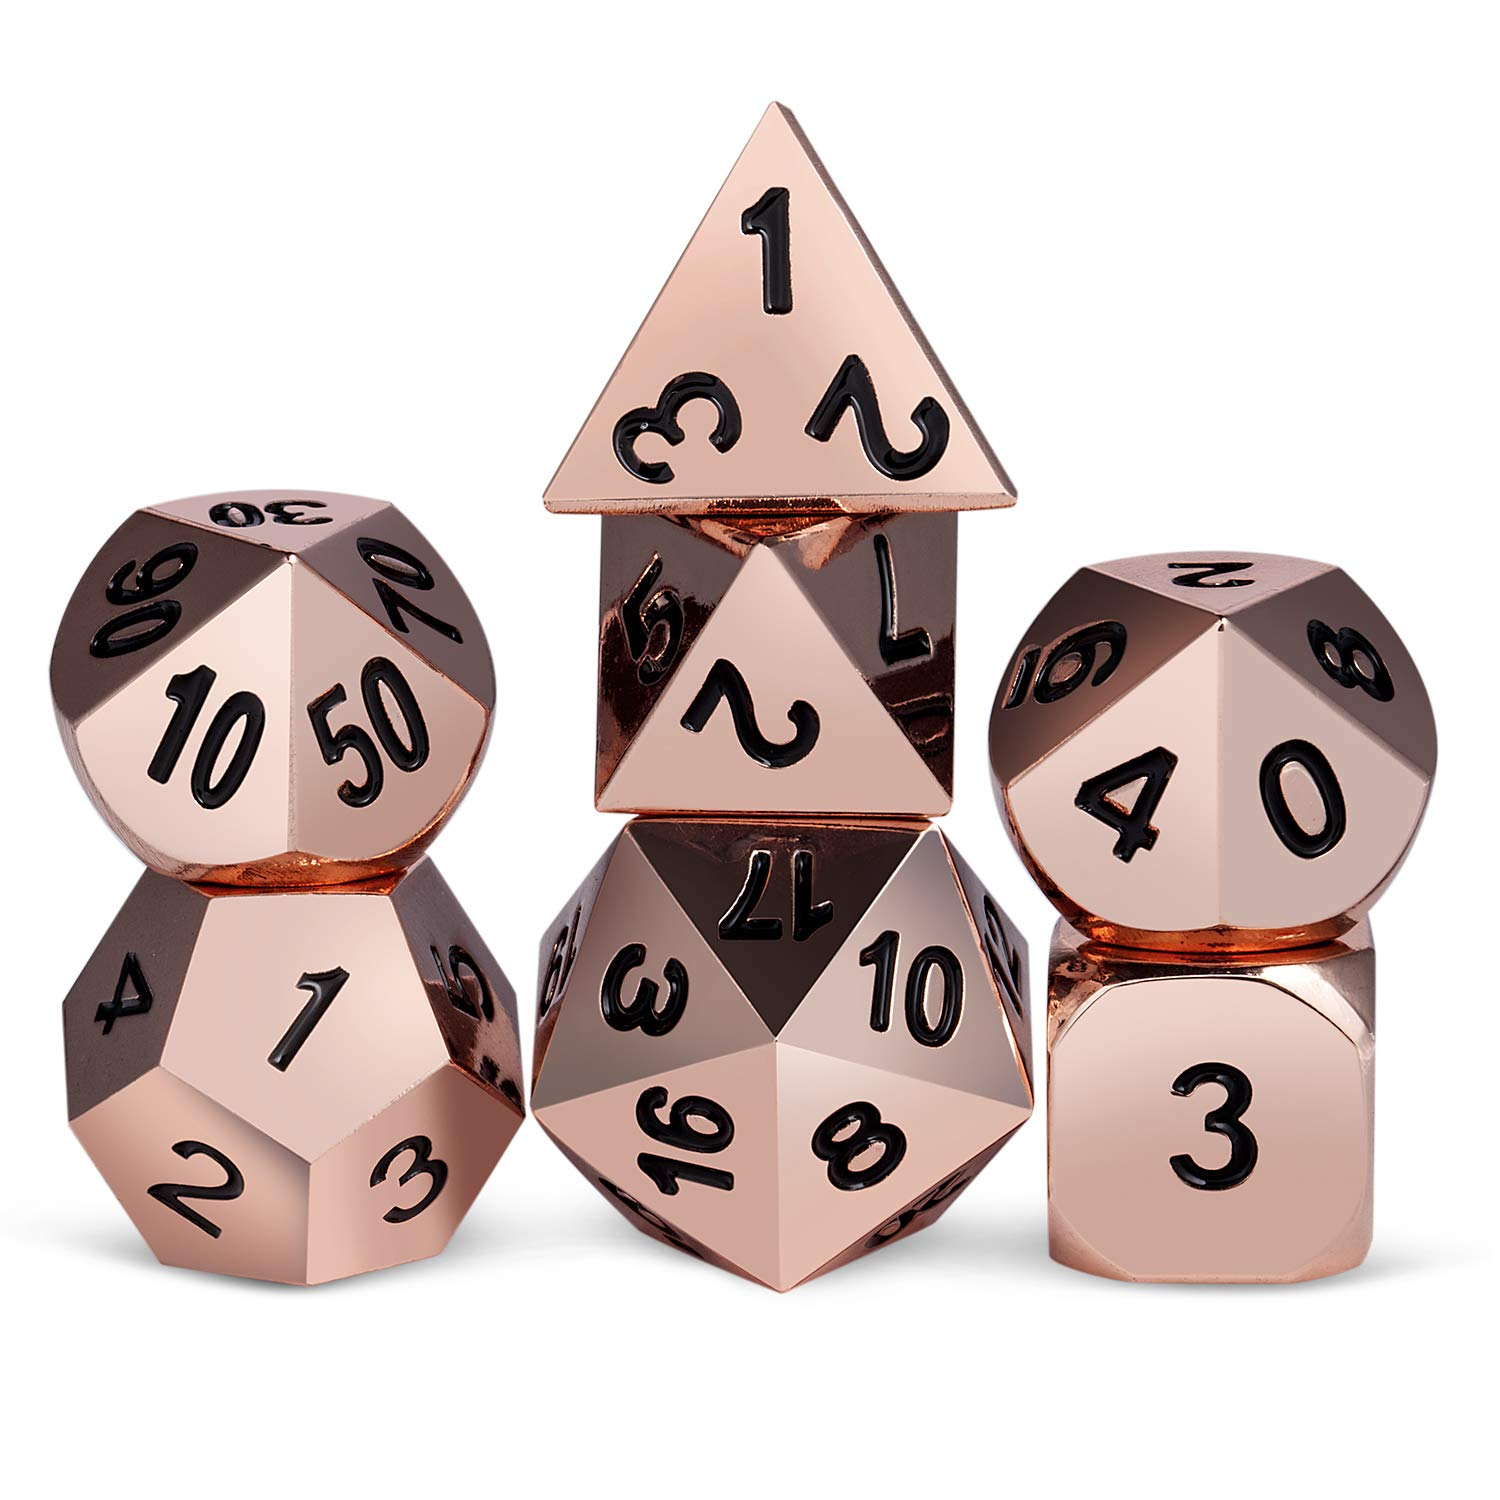 Rose Gold Dnd Metal Dice Set Hard 7 Die Polyhedral Dice Set With Silver Metal Tin For Dungeons And Dragons Role Playing Game Dd Rpg Shadowrun